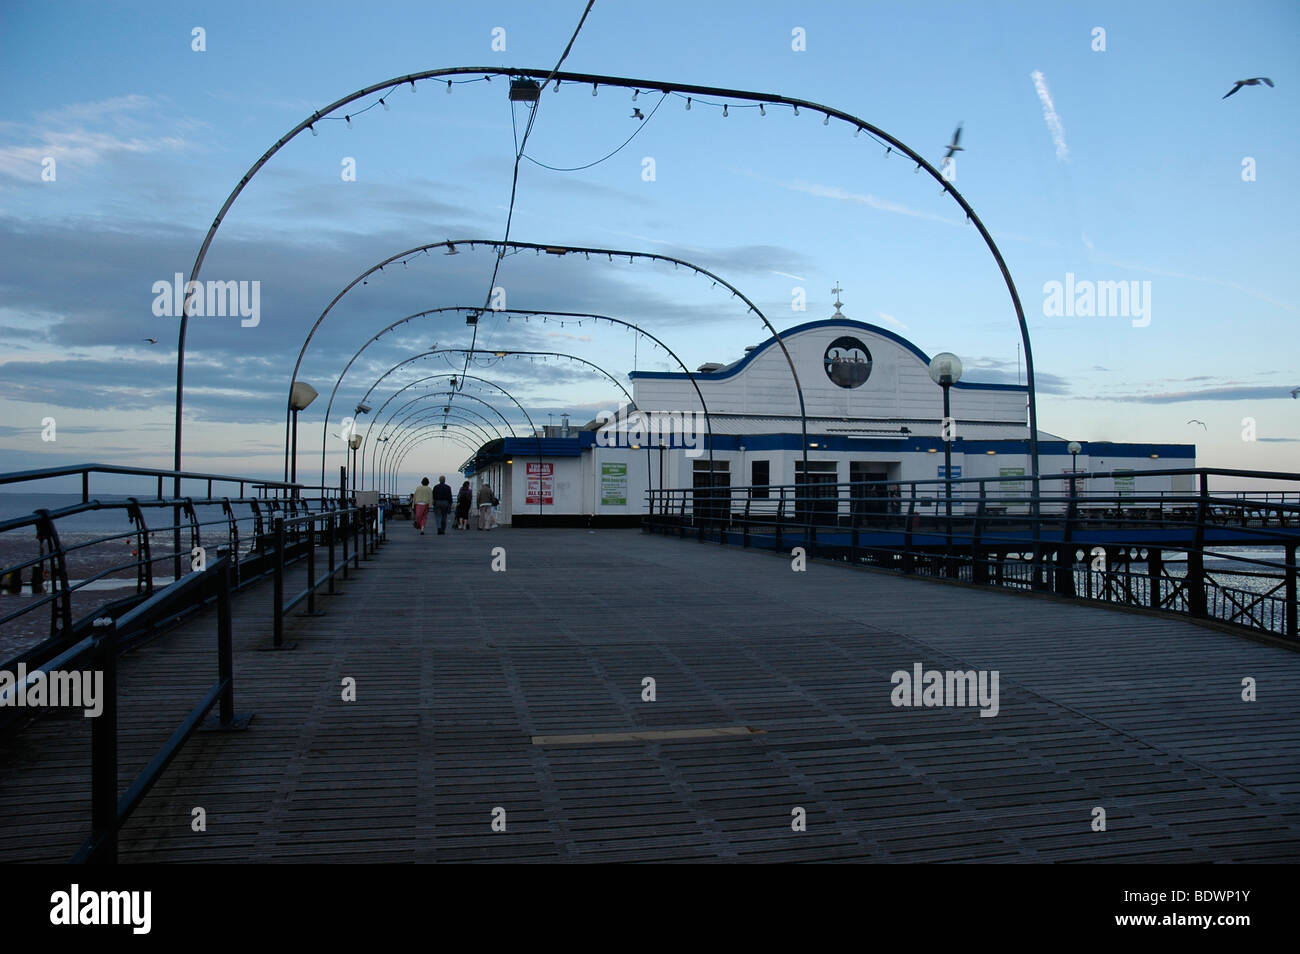 Dusk on Cleethorpes Pier - Stock Image